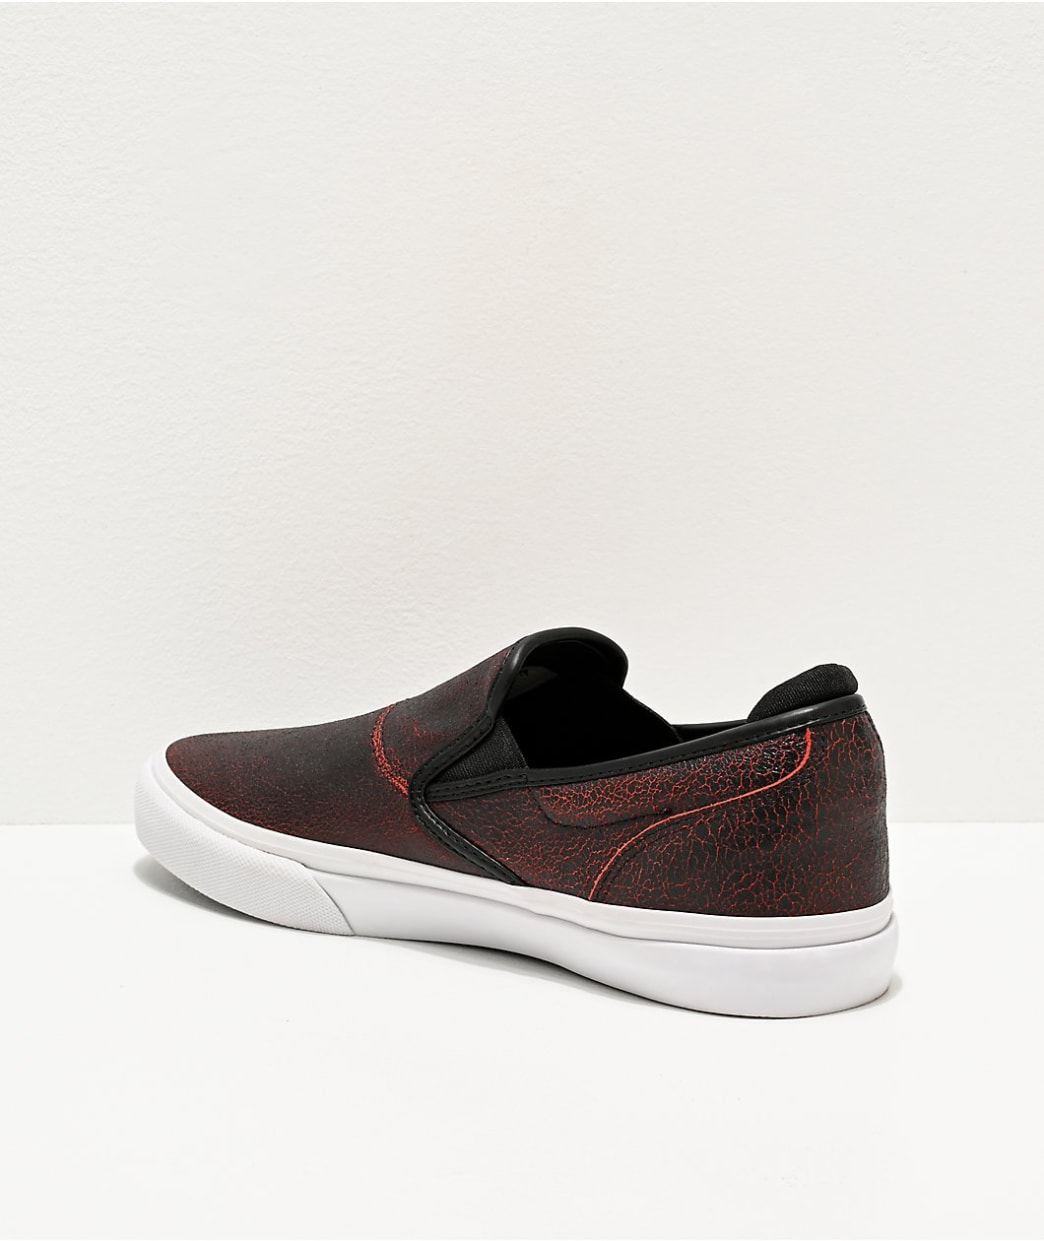 Emerica Wino G6 Slip-On Skate Shoes - Black / Red / White | Shoes by Emerica 2